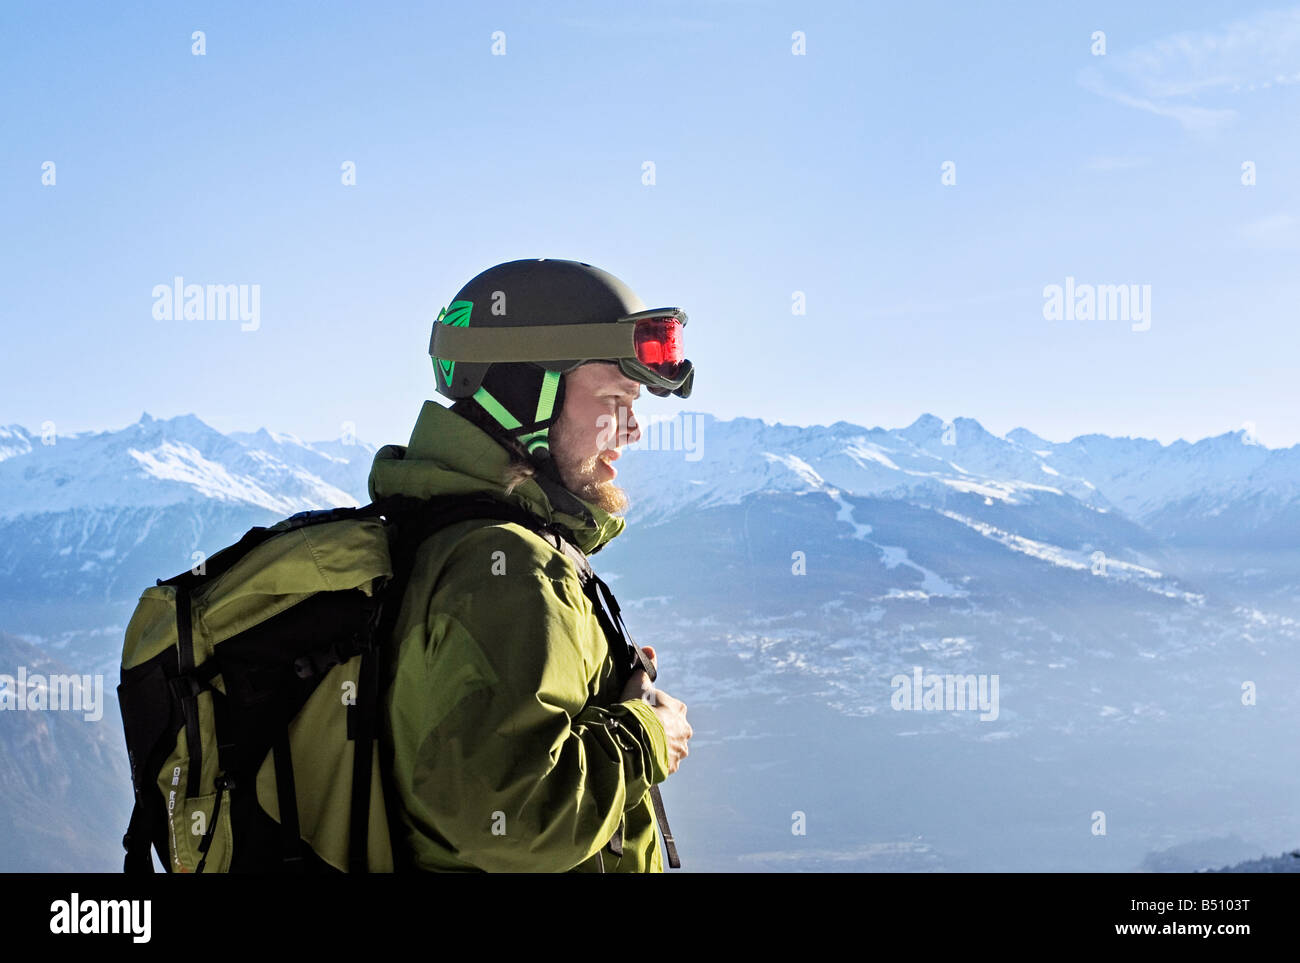 Young man in ski wear Alps Switzerland - Stock Image